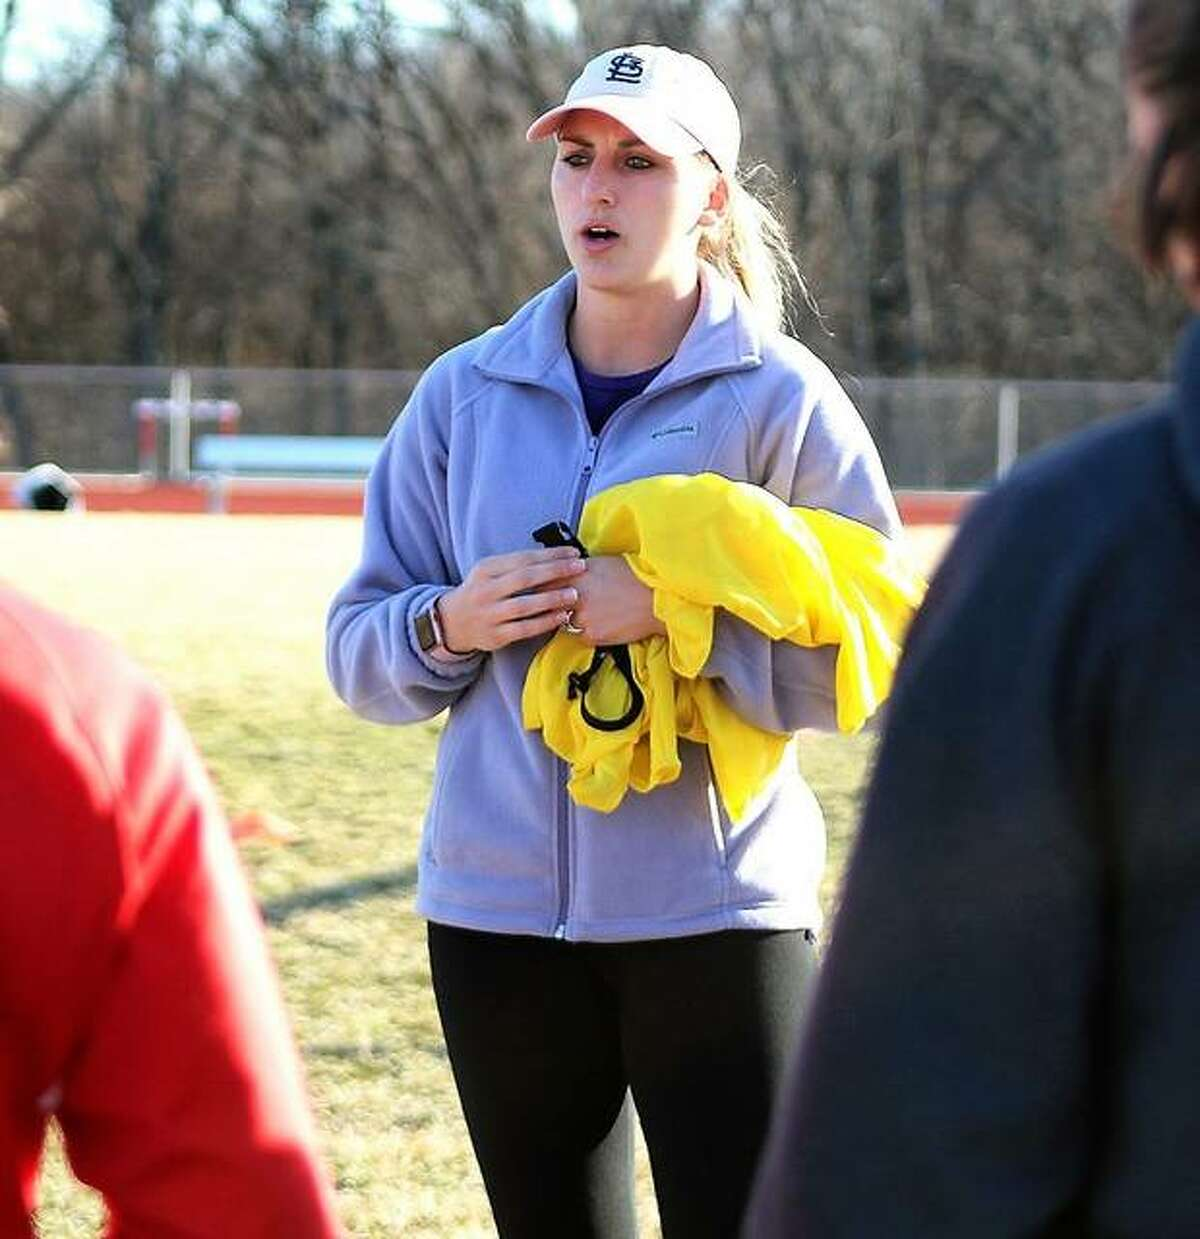 Alton girls soccer coach Gwen Sabo speaks to her players during a 2020 preseason practice at AHS. The season never started, however, after the IHSA pulled the plug on spring sports because of the coronavirus pandemic.